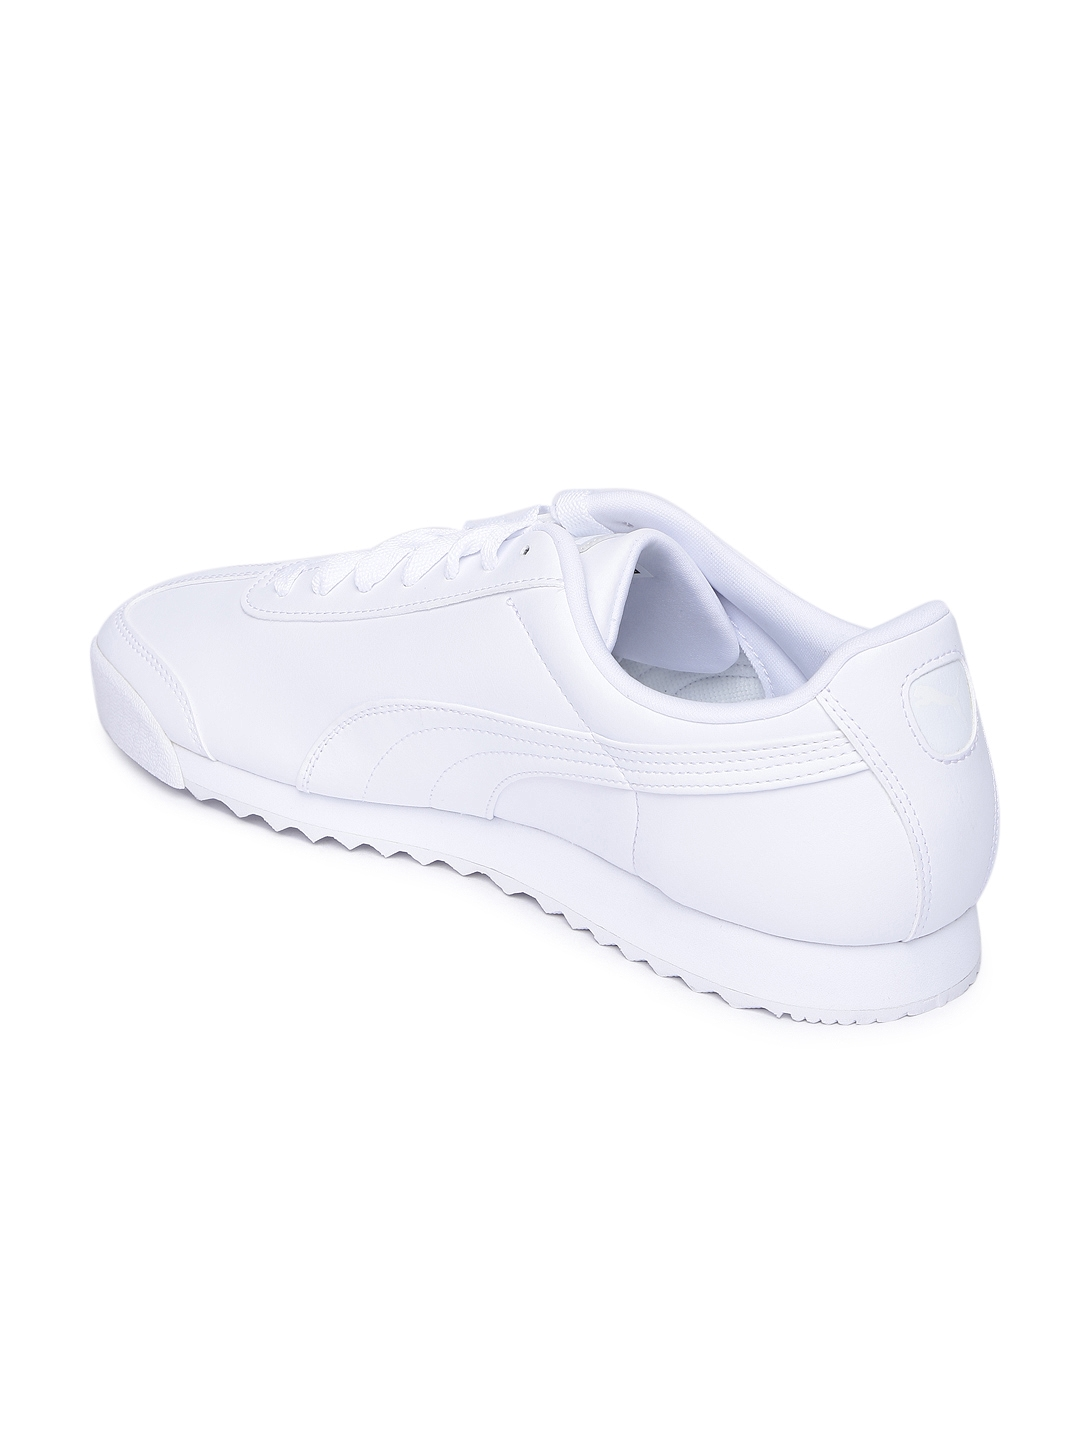 c390ce450fe2 Buy Puma Men White Roma Basic Sneakers - Casual Shoes for Men ...